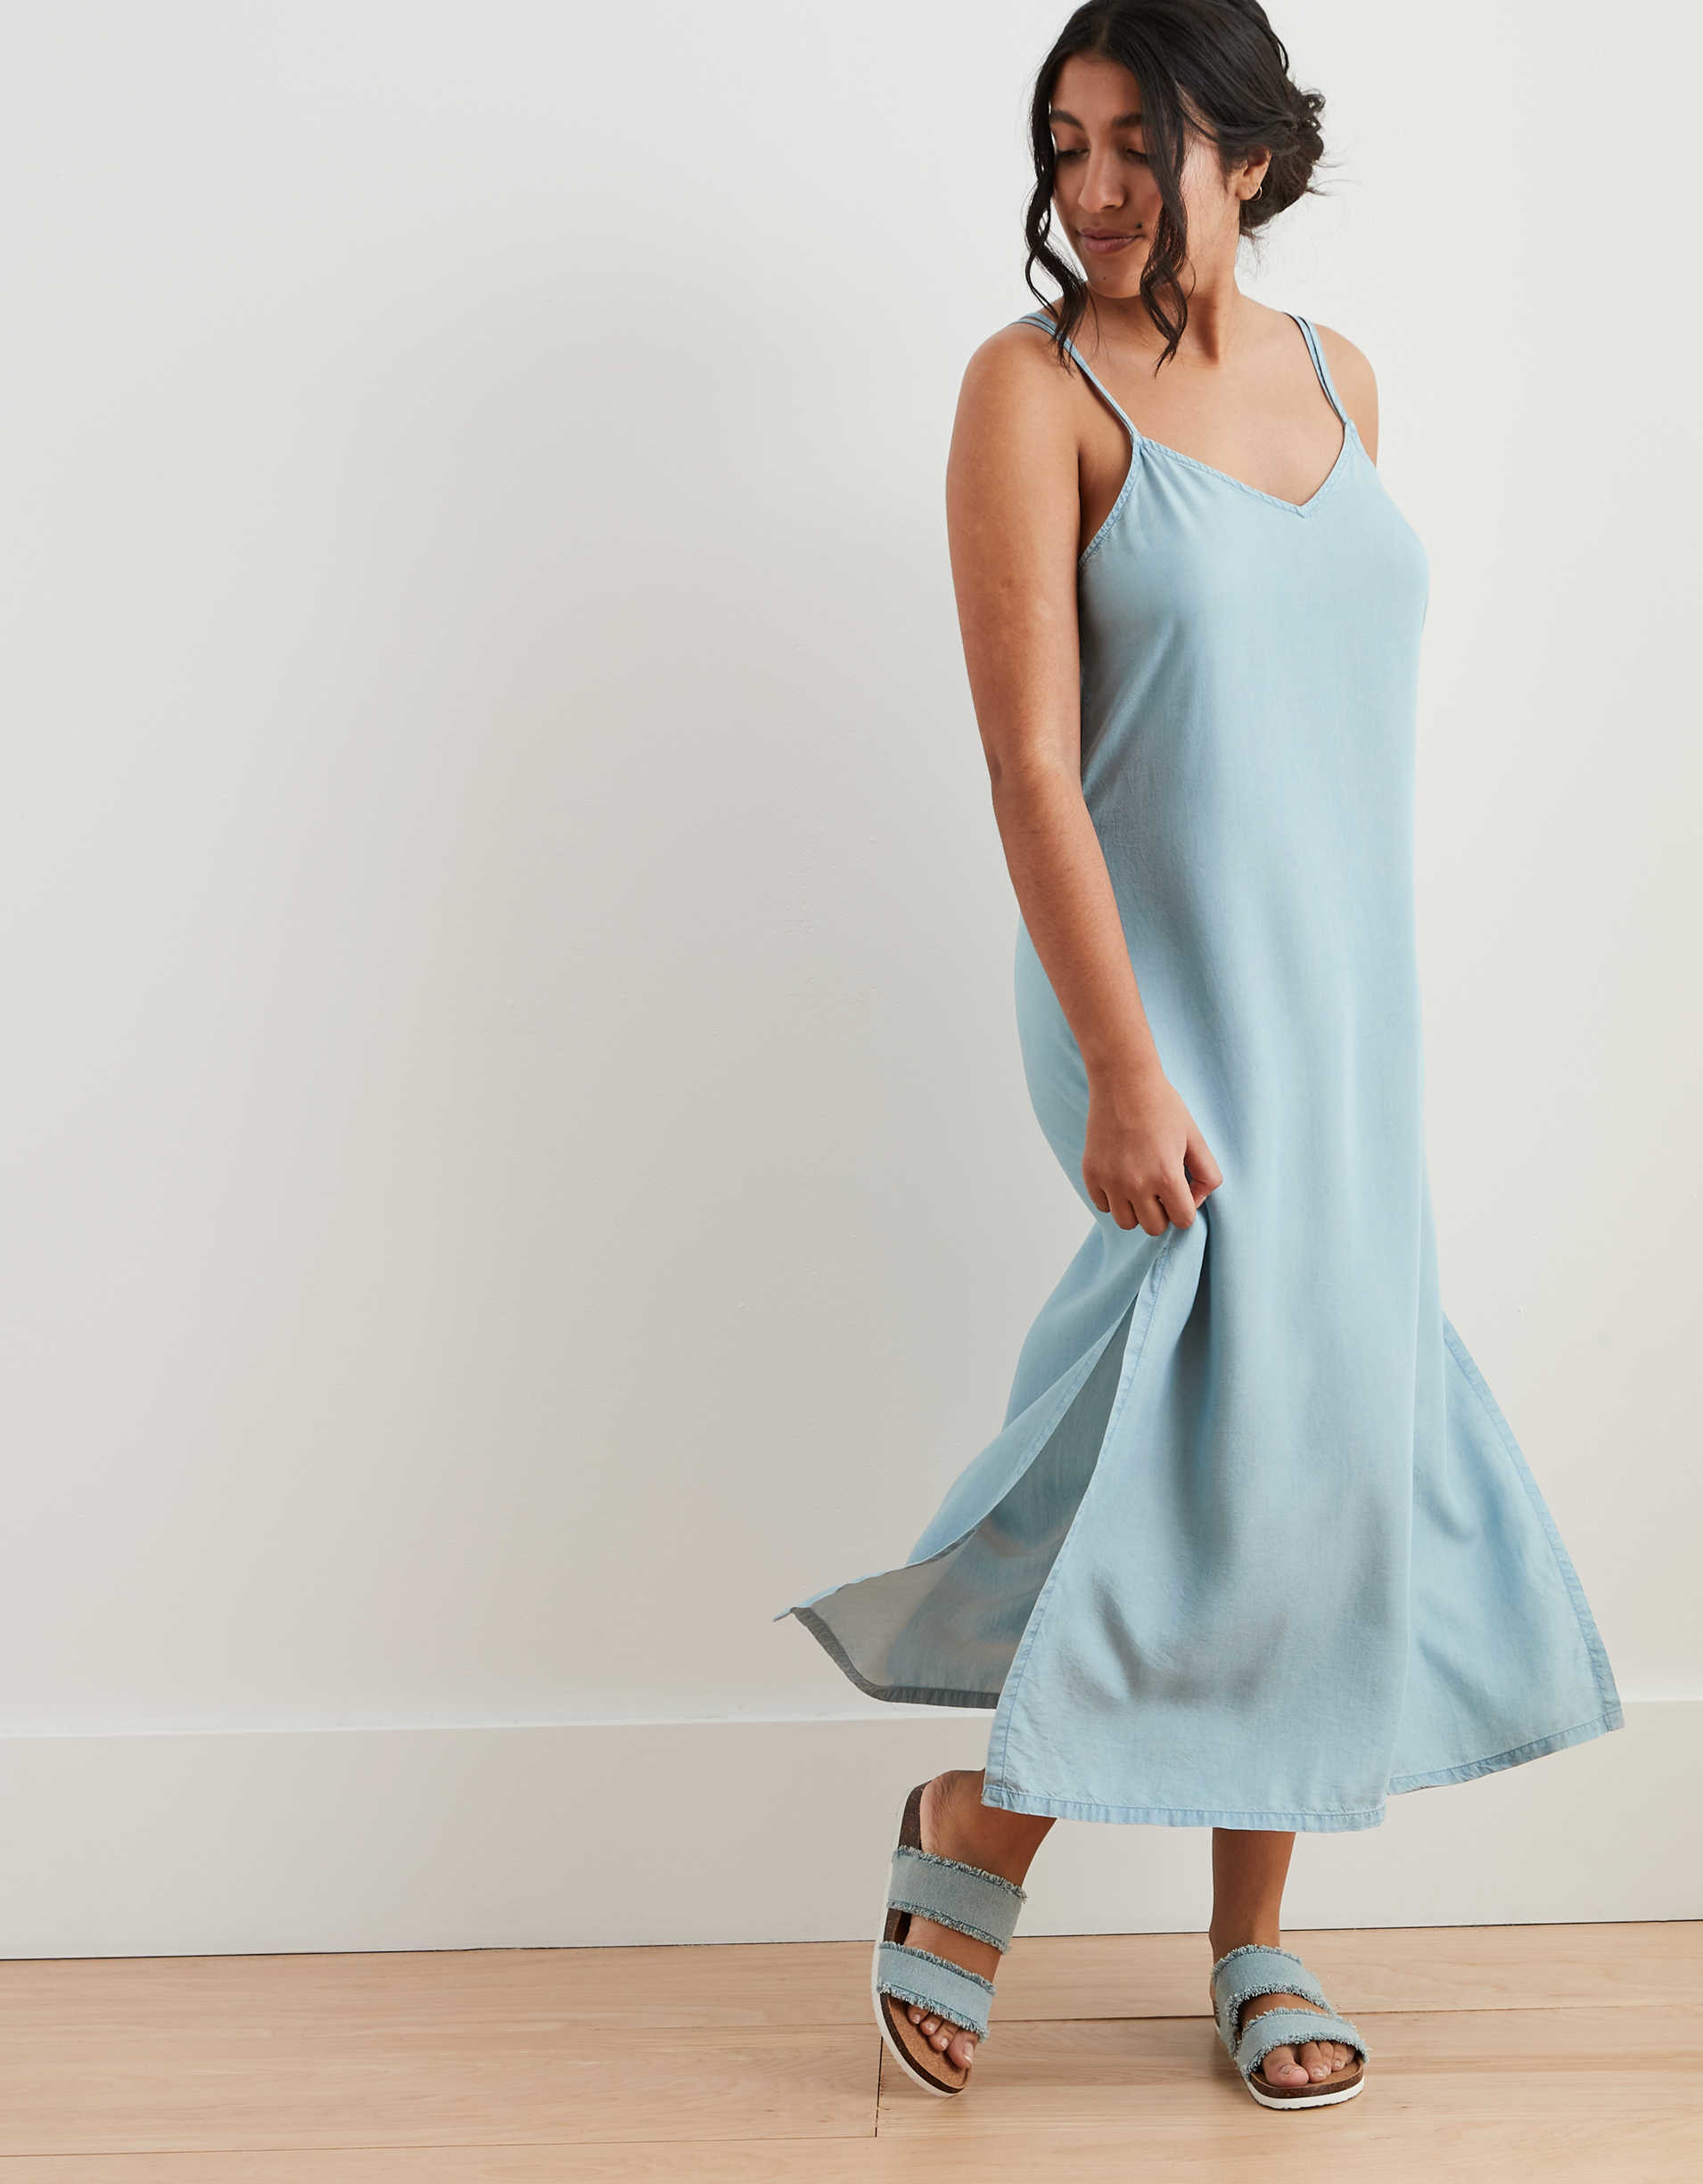 model wearing a spaghetti strap slip dress in light blue chambray fabric with side slits just past the knee